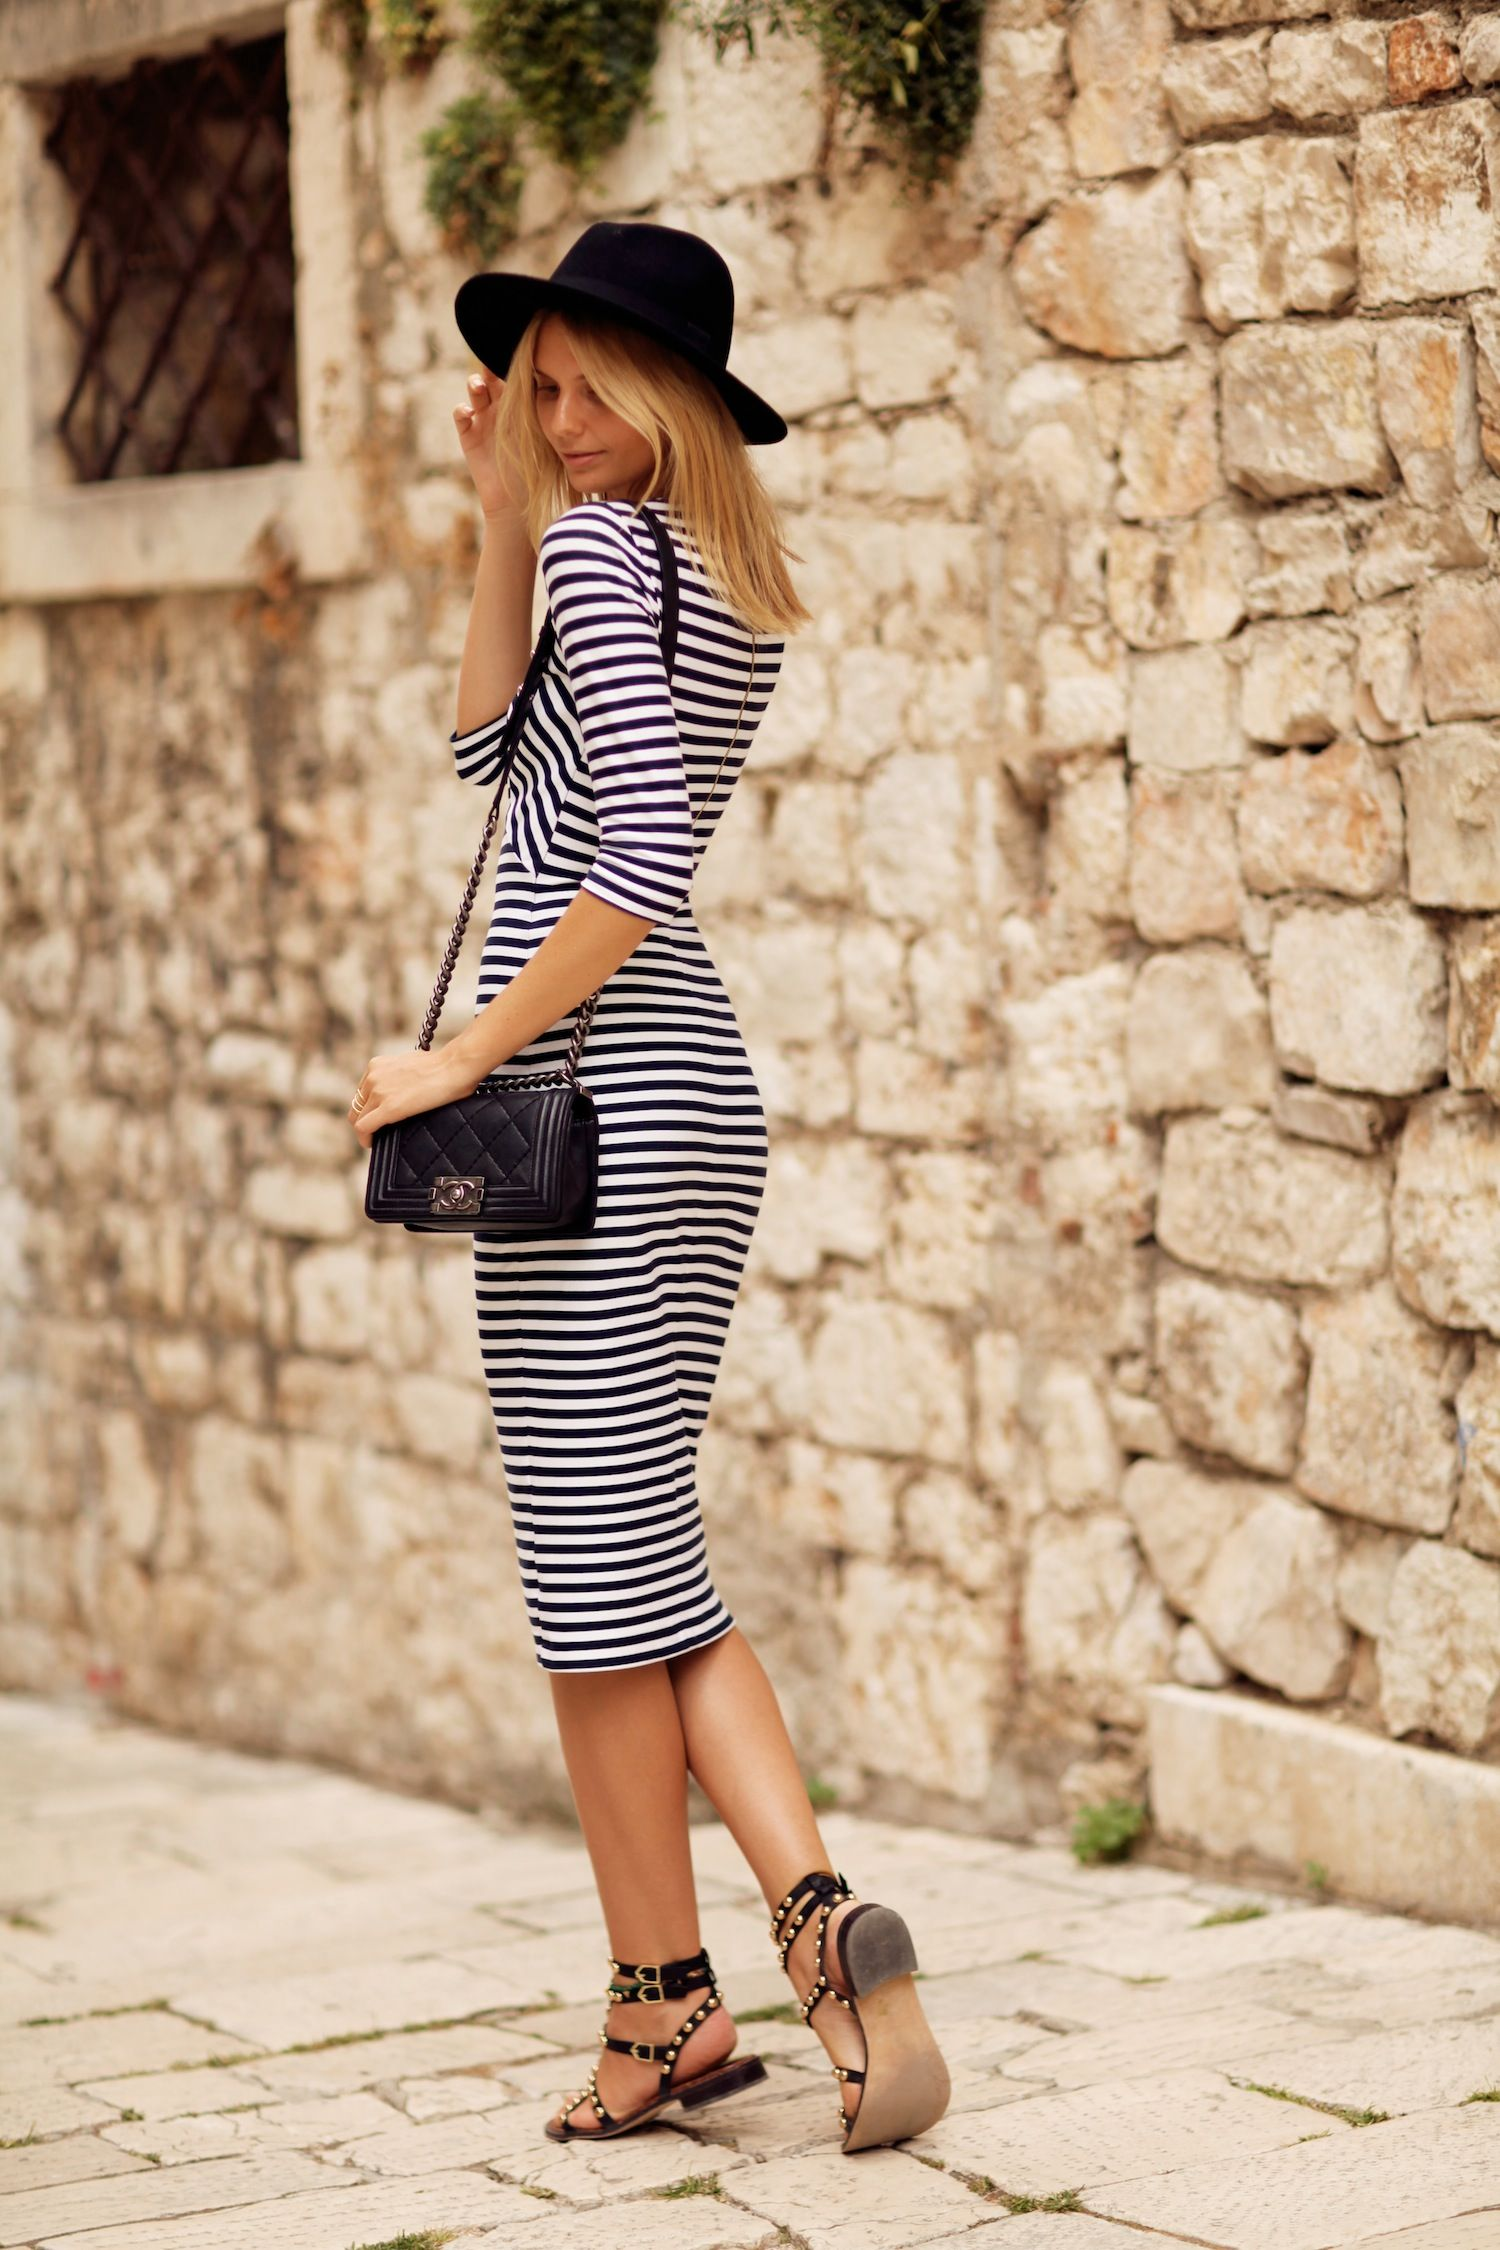 #stripes #summer outfit